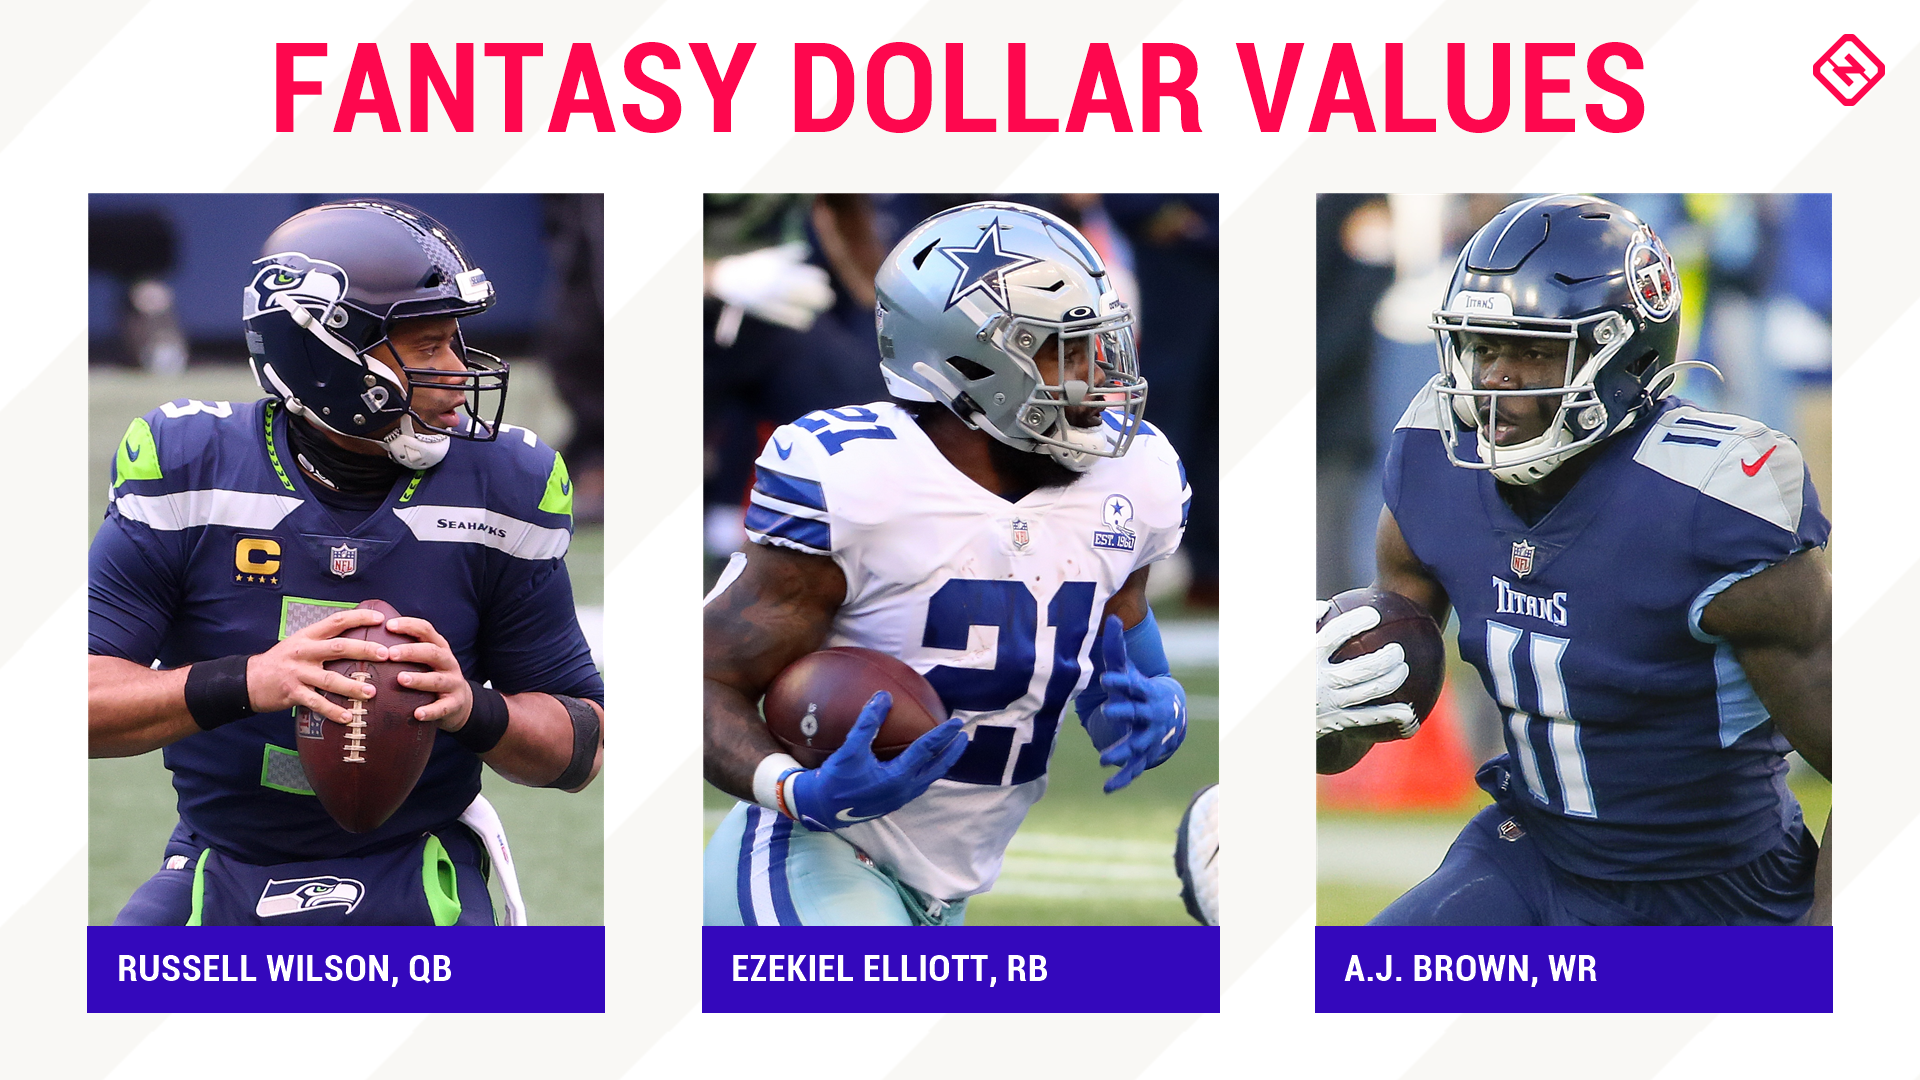 Updated 2021 Fantasy Football Auction Values Cheat Sheet: Dollar projections, overall rankings for standard & PPR leagues